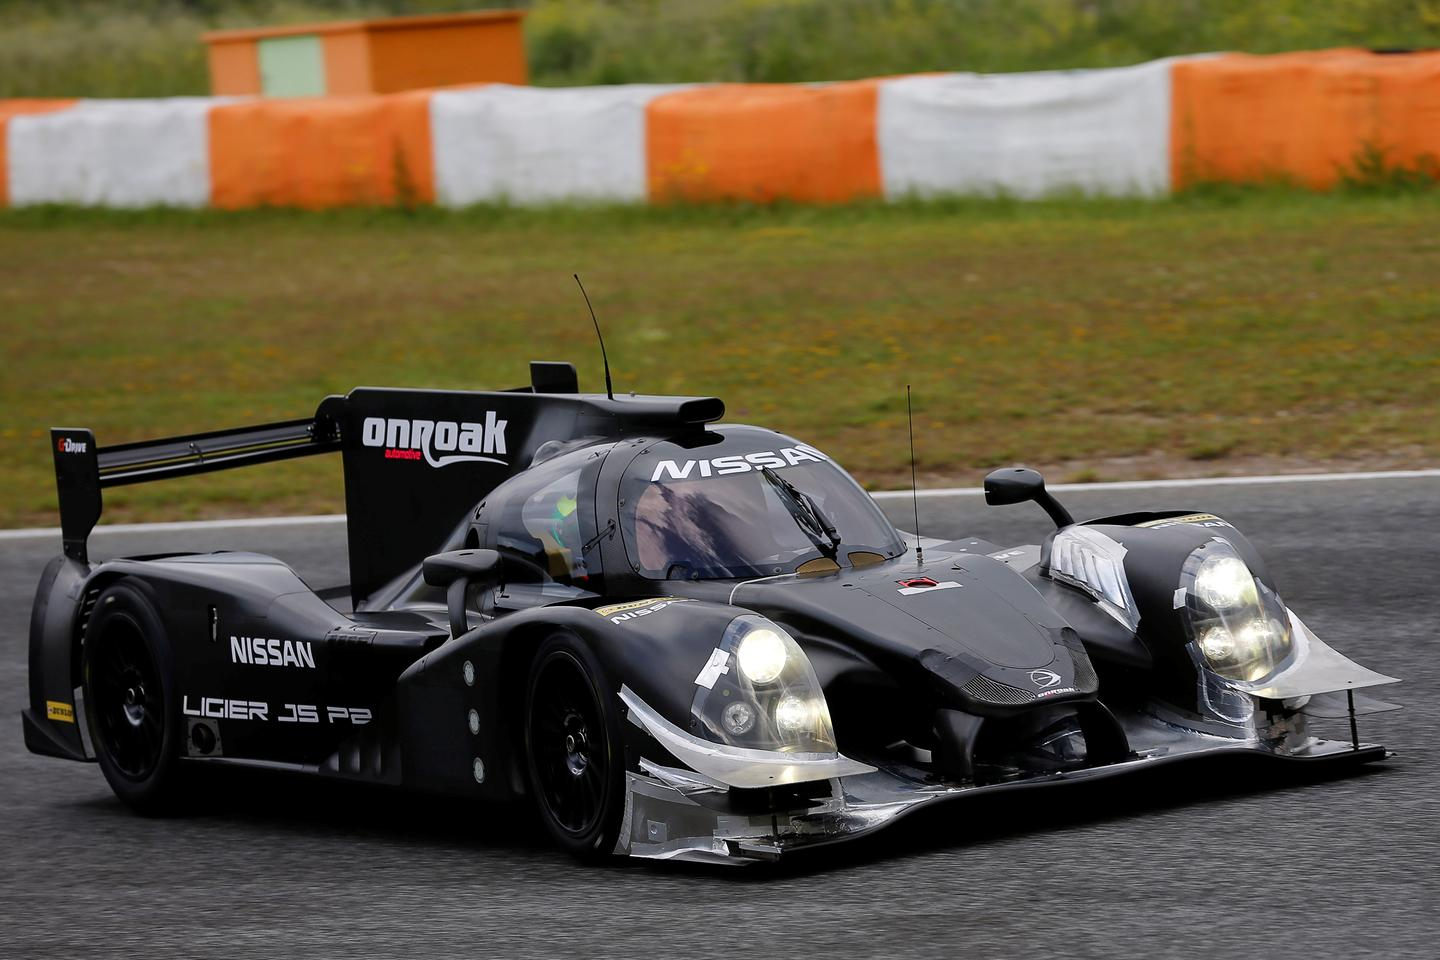 Four Nissan GT Academy winners will race at Le Mans this year, including two who will join Alex Brundle in a Ligier JS P2